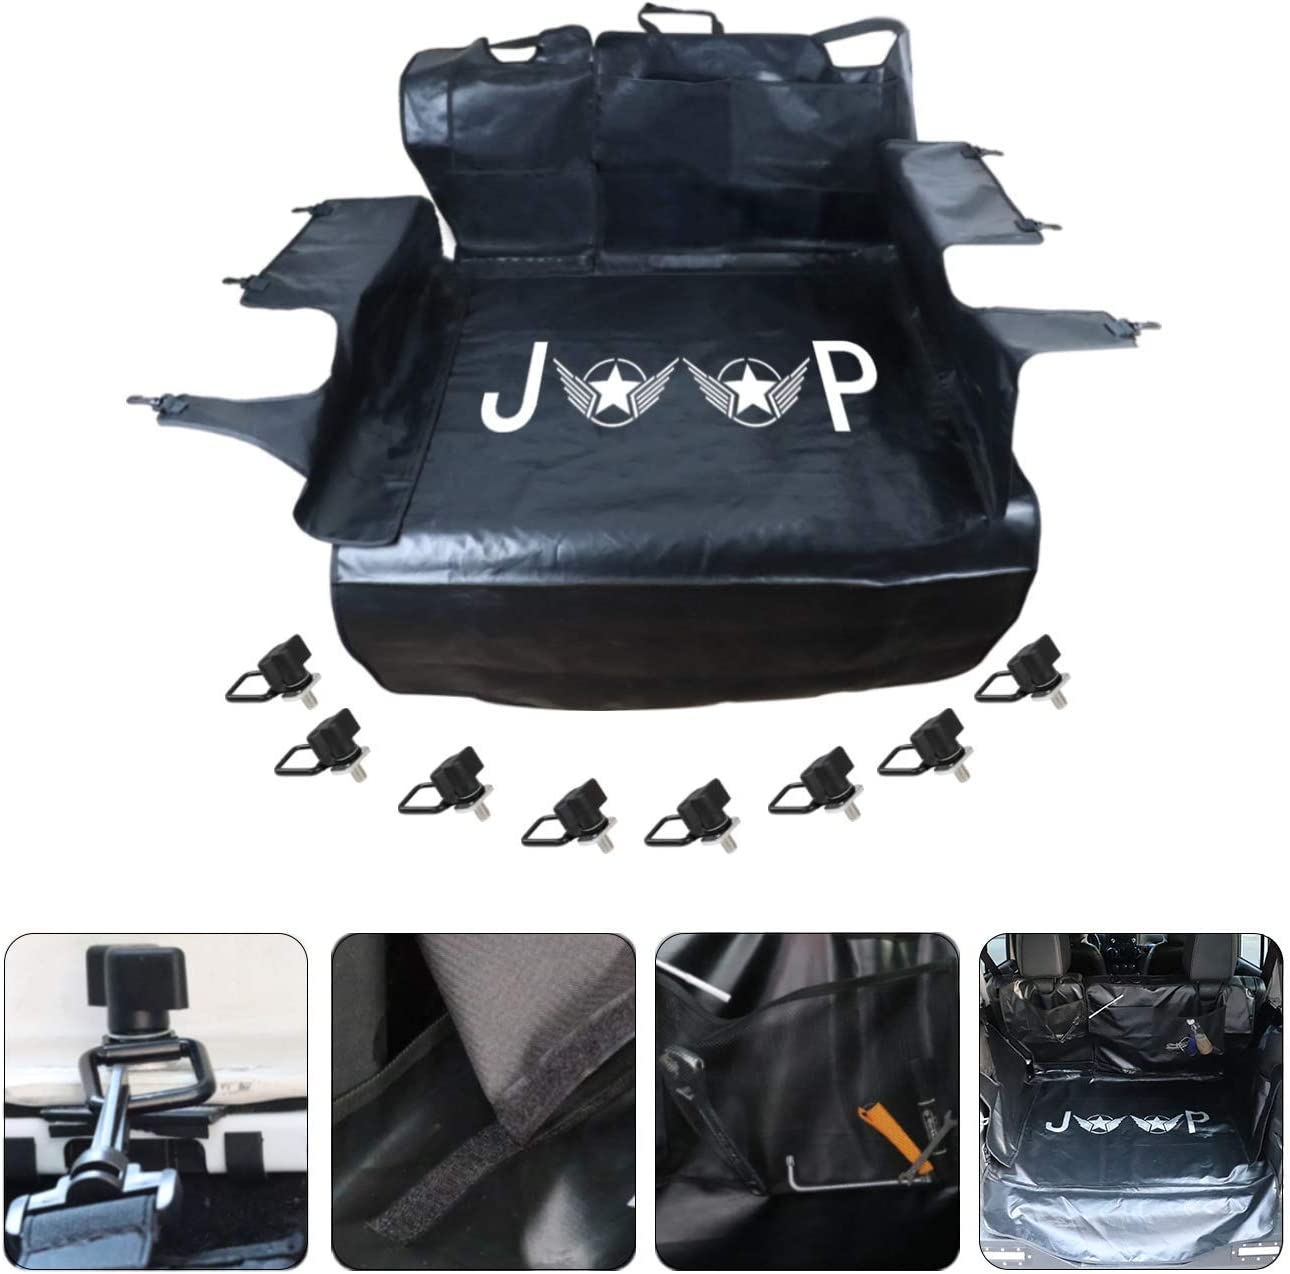 AUFER 1 Year Warranty for 2007-2019 Jeep Wrangler JK JL 4-Door,Rear Beach Seat Covers, Pet Seat Proof Covers Dog Seat Covers with Waterproof Nonslip Multipurpose Heavy Duty Oxford